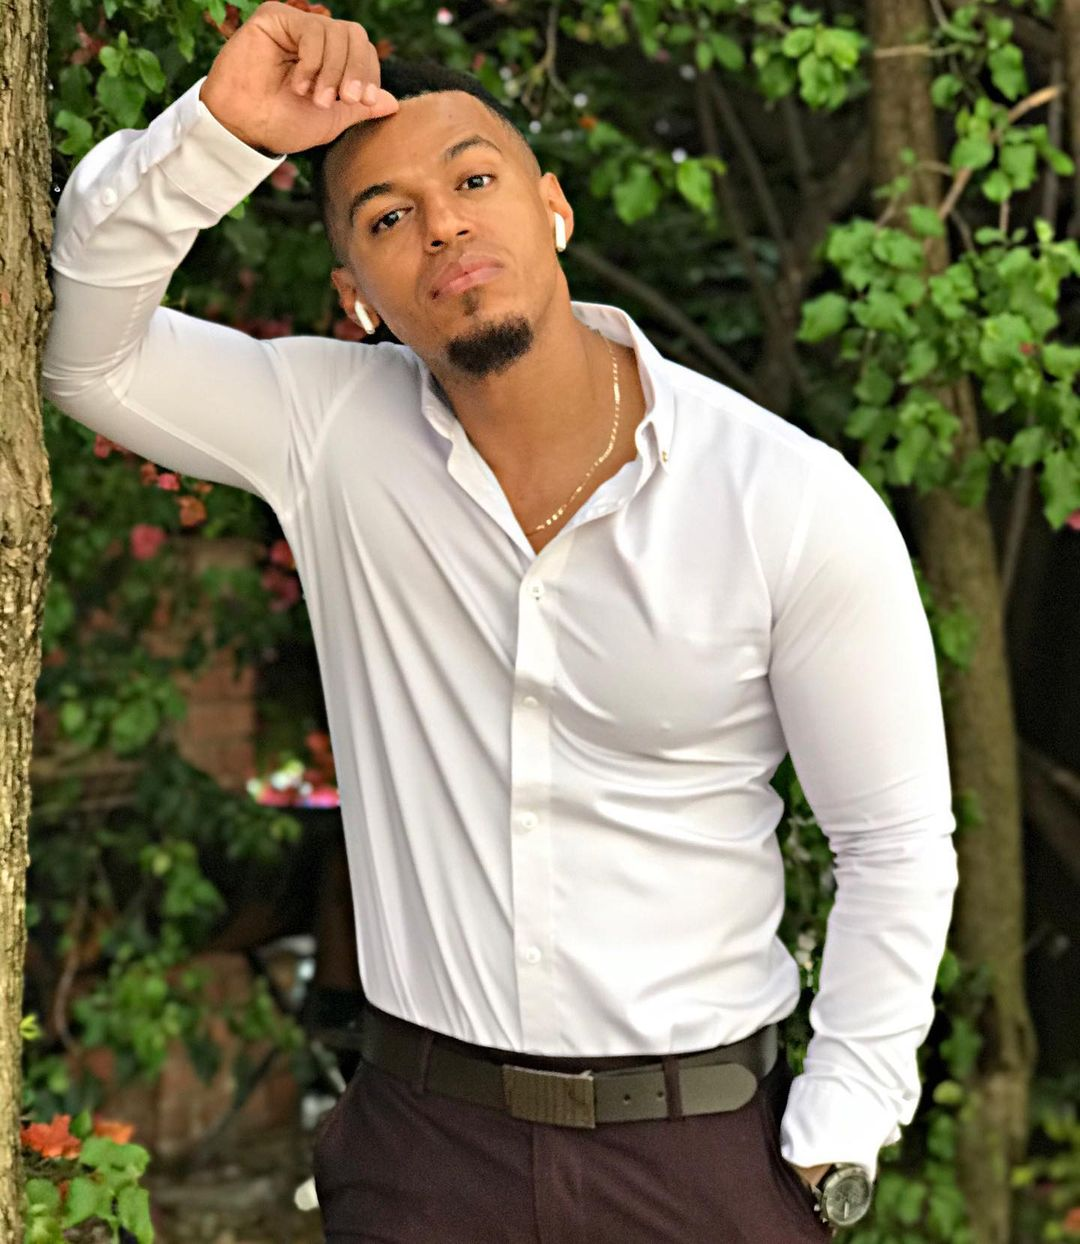 Skeem Saam actor Cedric Fourie (Lehasa Maphosa) disappoints ladies with his small private part, photos go viral